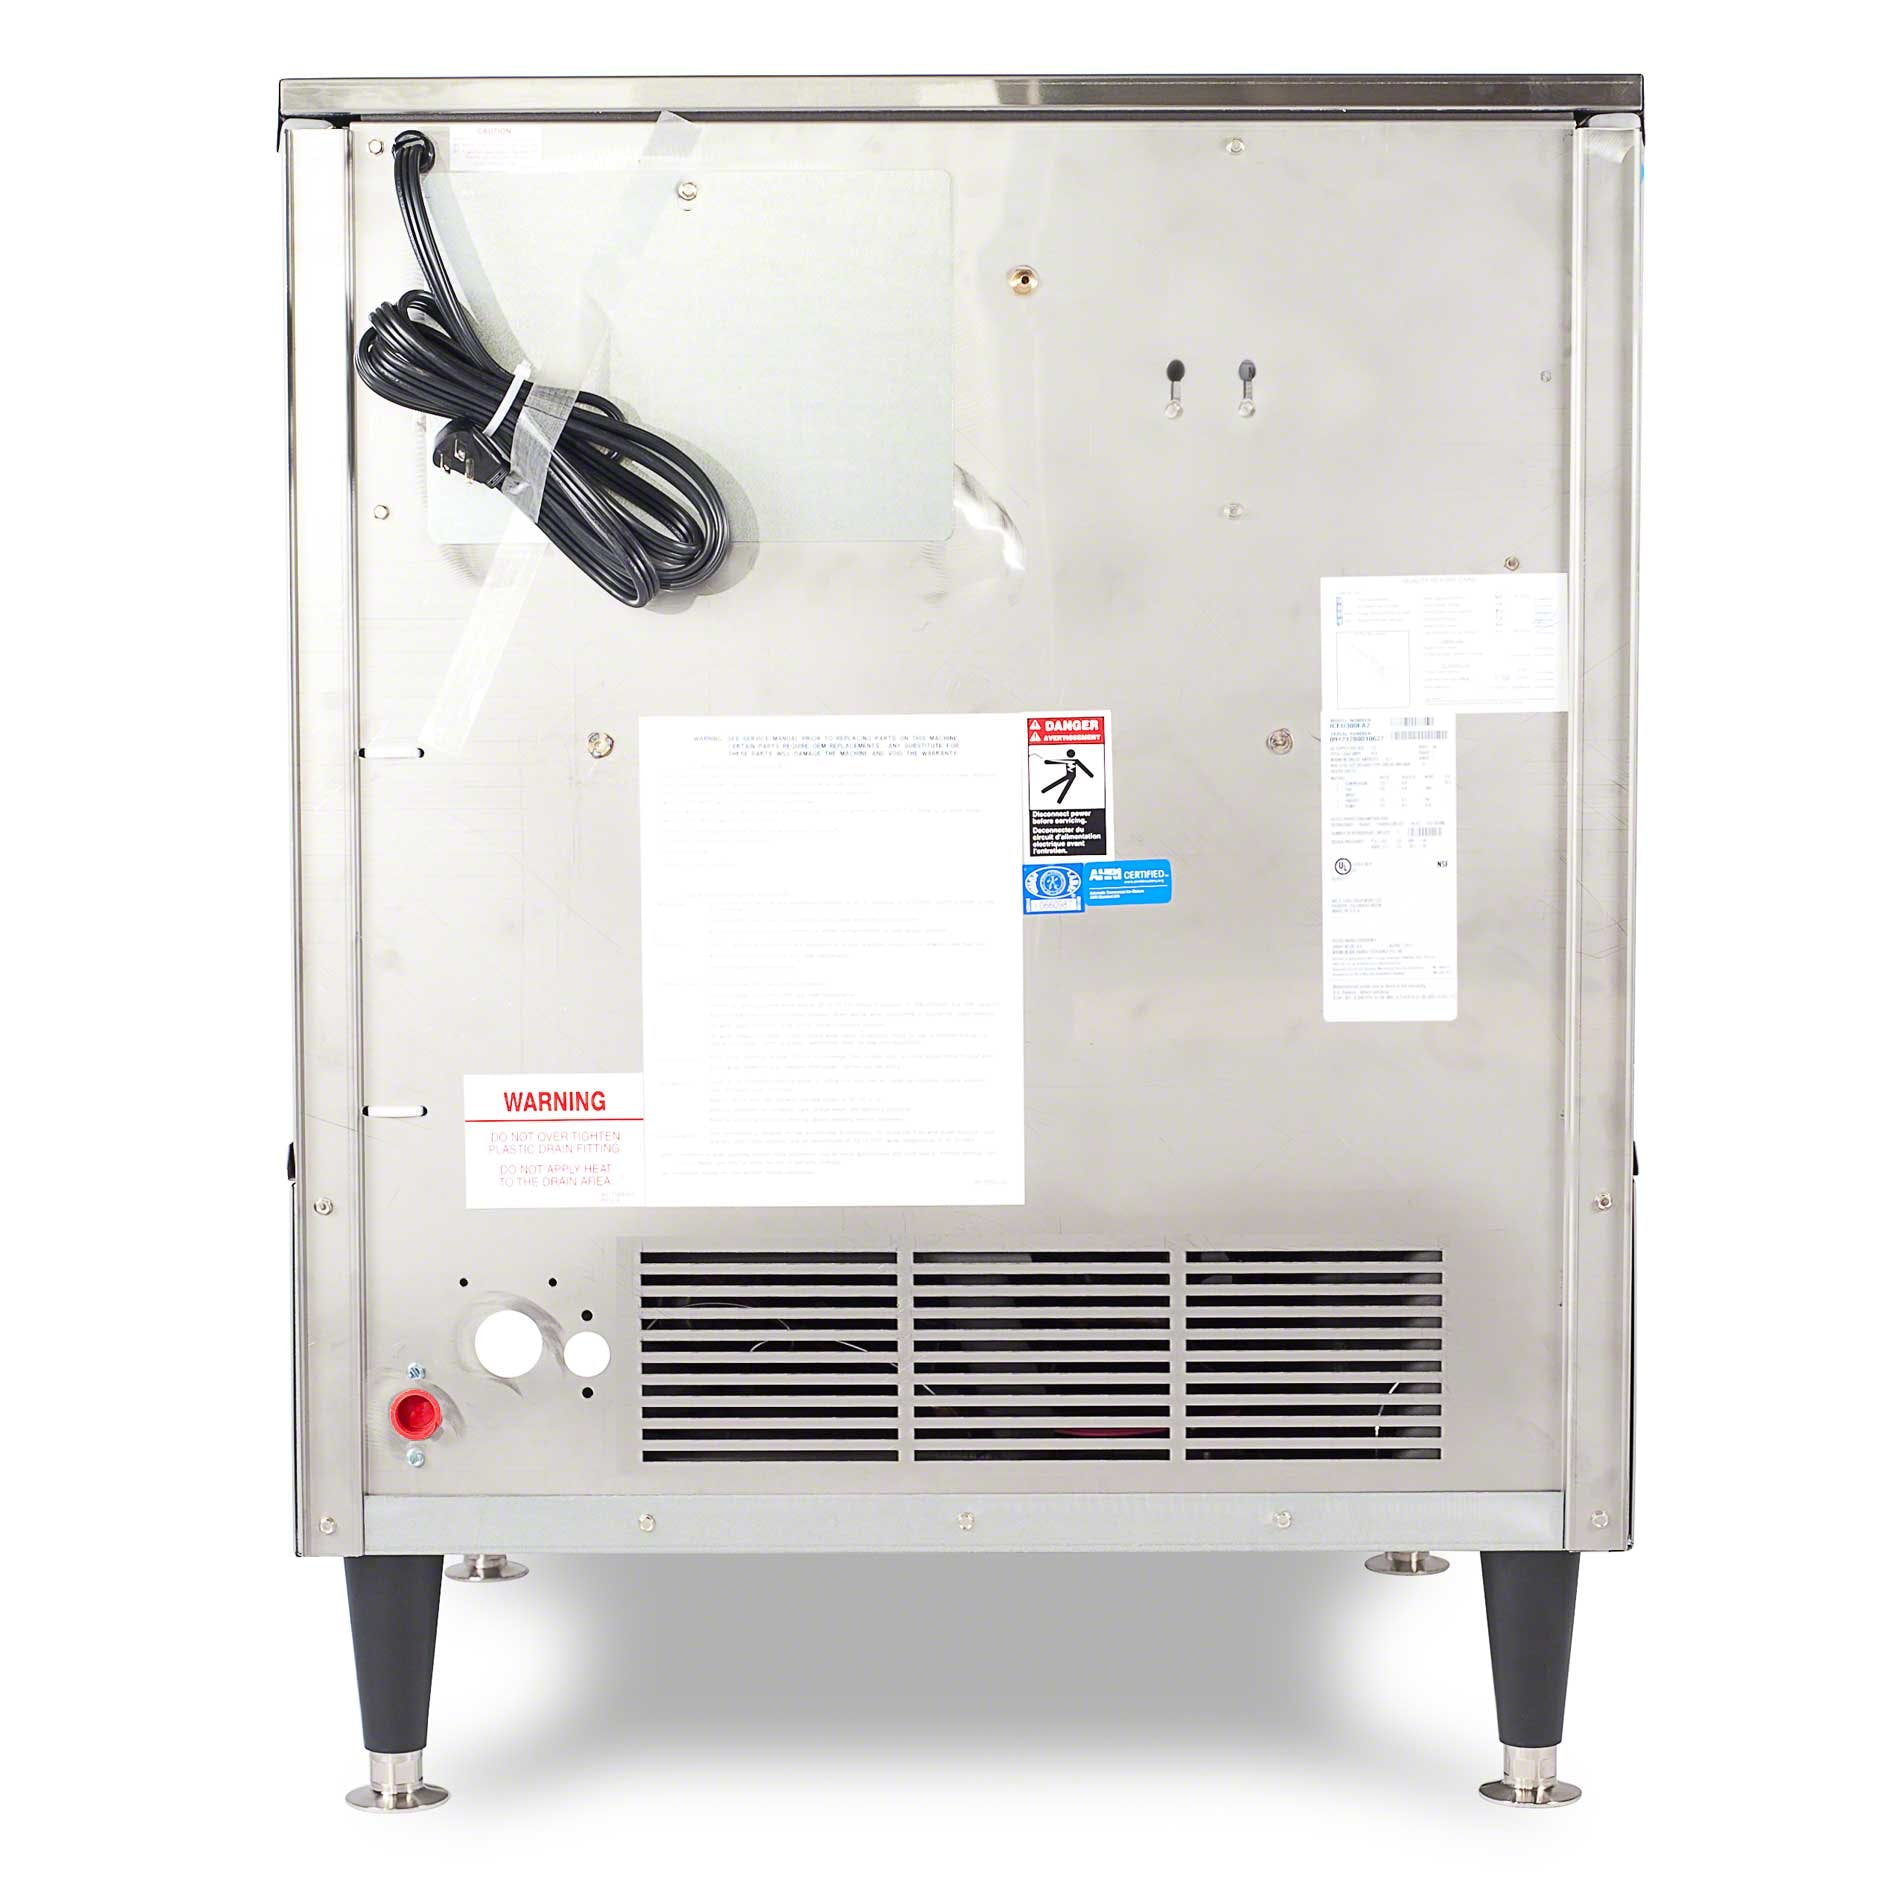 Ice-O-Matic - ICEU220FA 238 lb Self-Contained Full Cube Ice Machine - sold by Food Service Warehouse